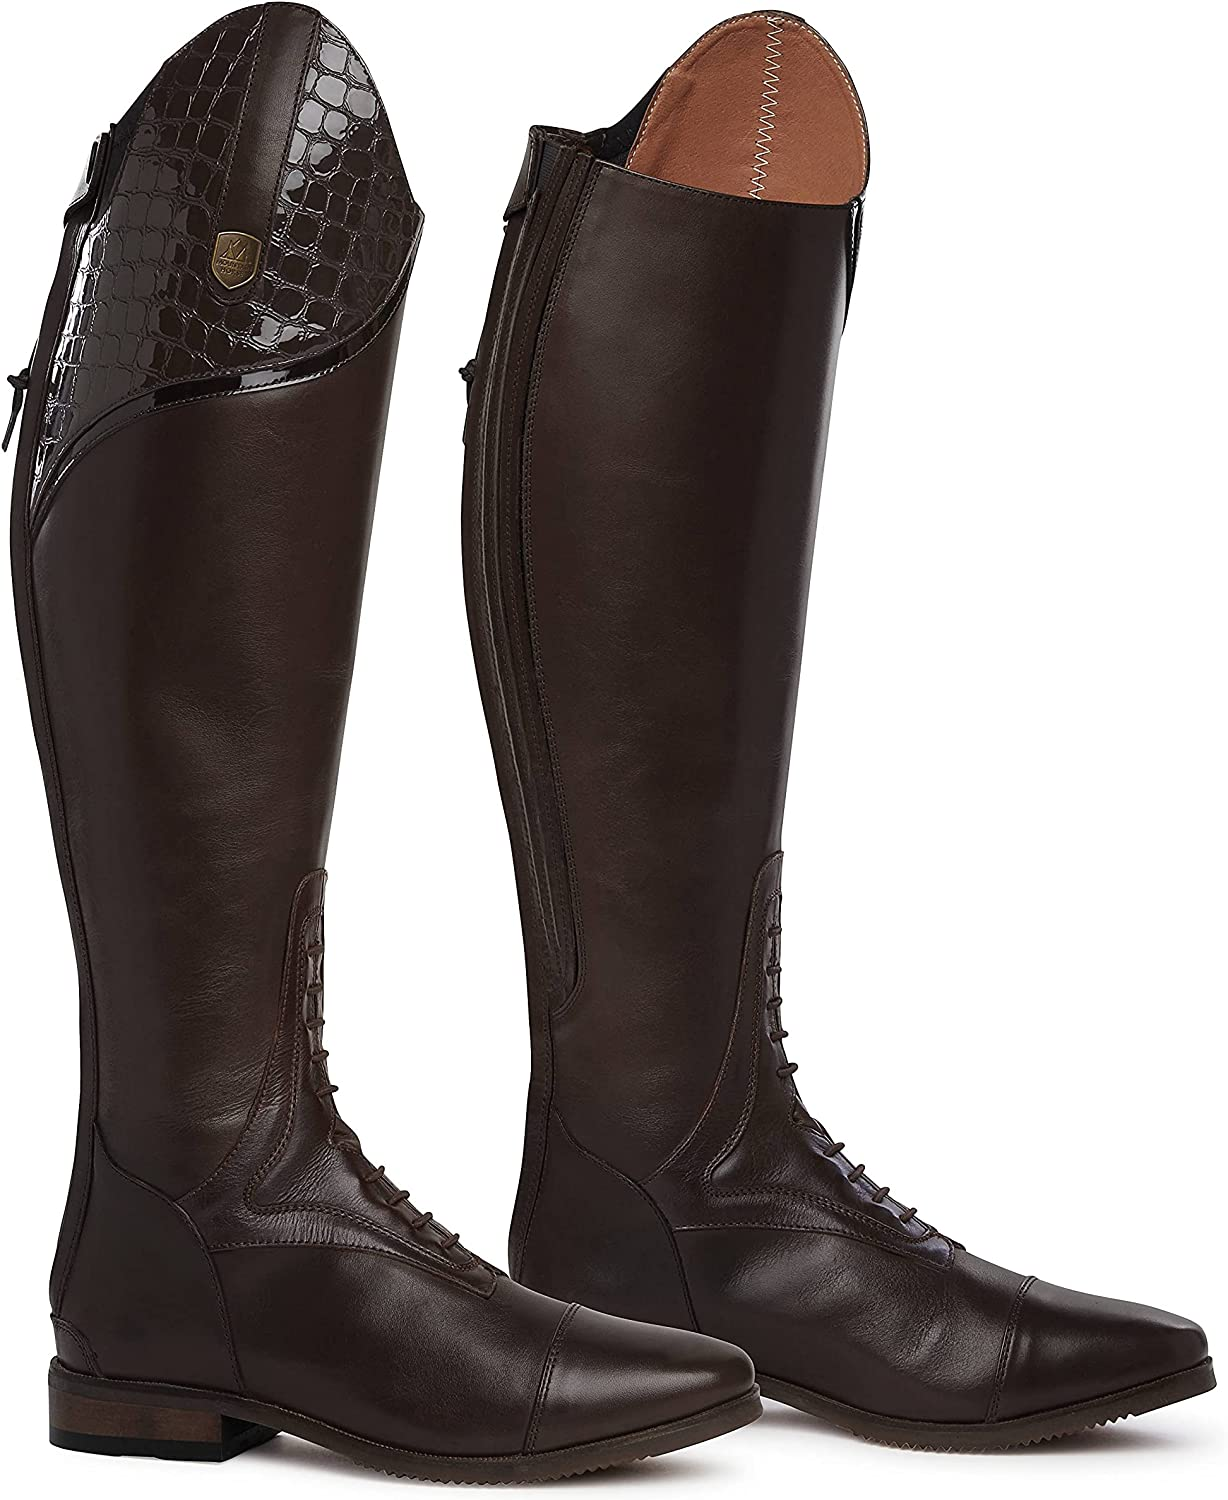 Mountain Horse Sovereign LUX Brown Field 8ST Cheap Selling and selling mail order sales Boot